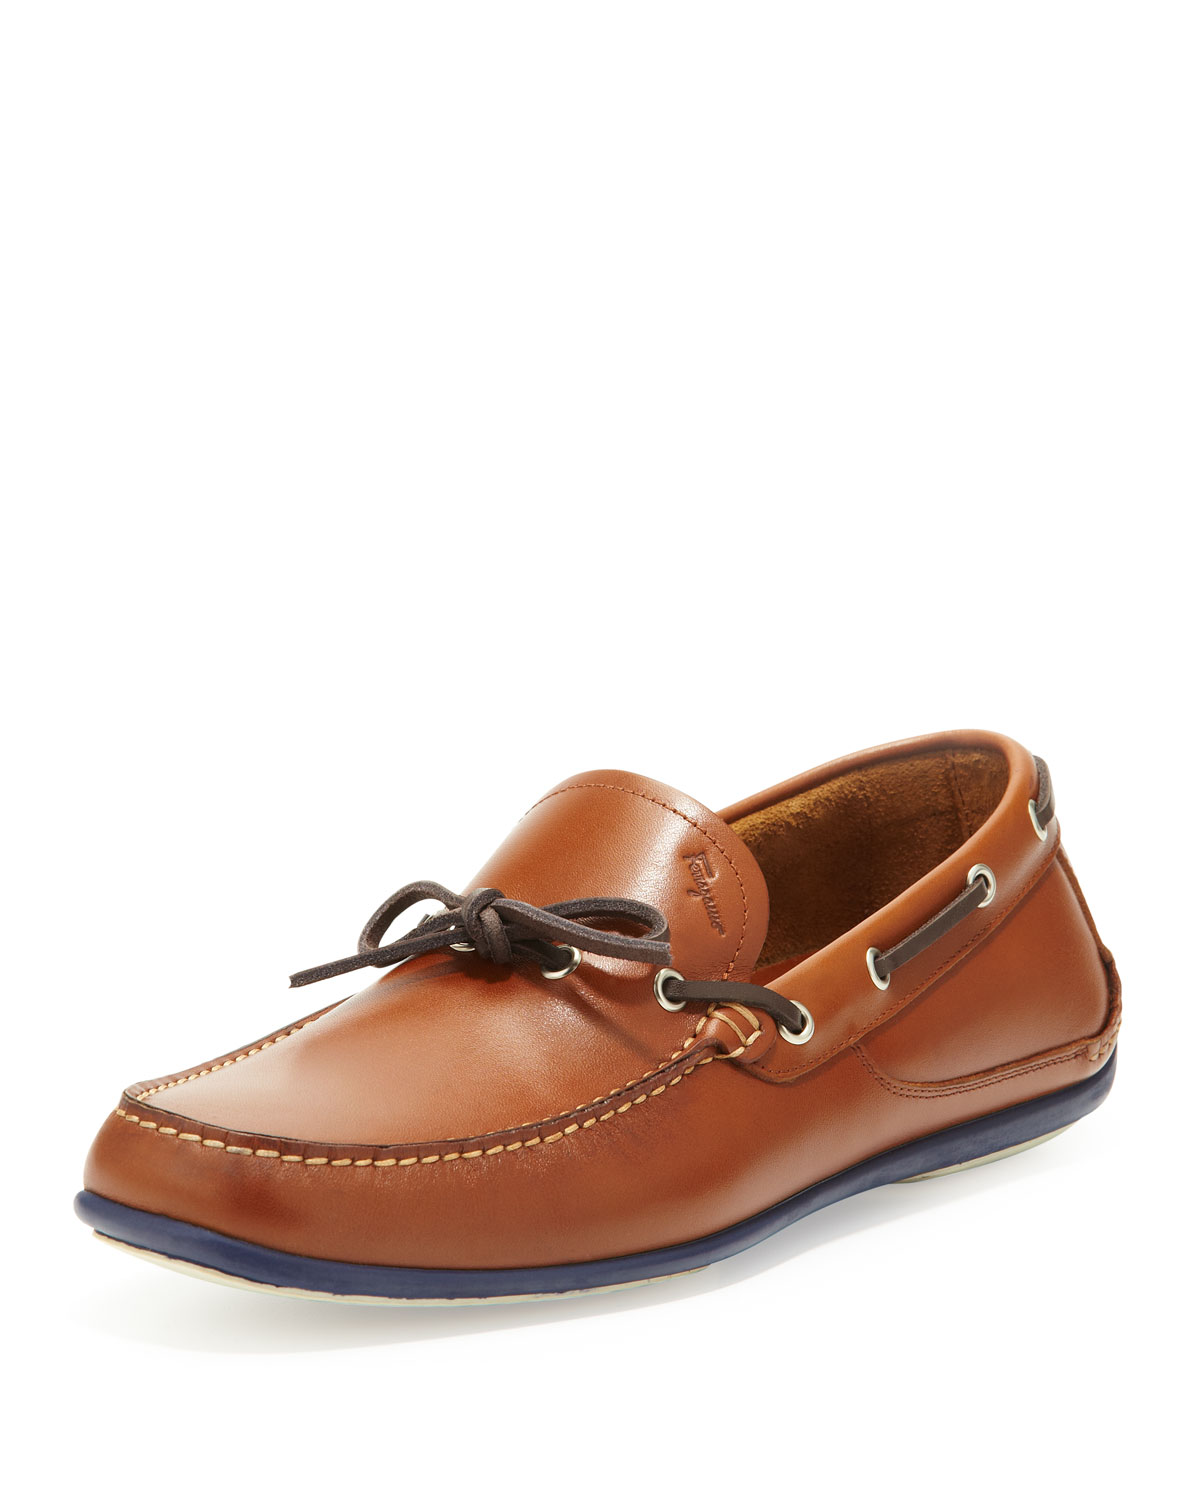 Men S Shoe With Toe Out